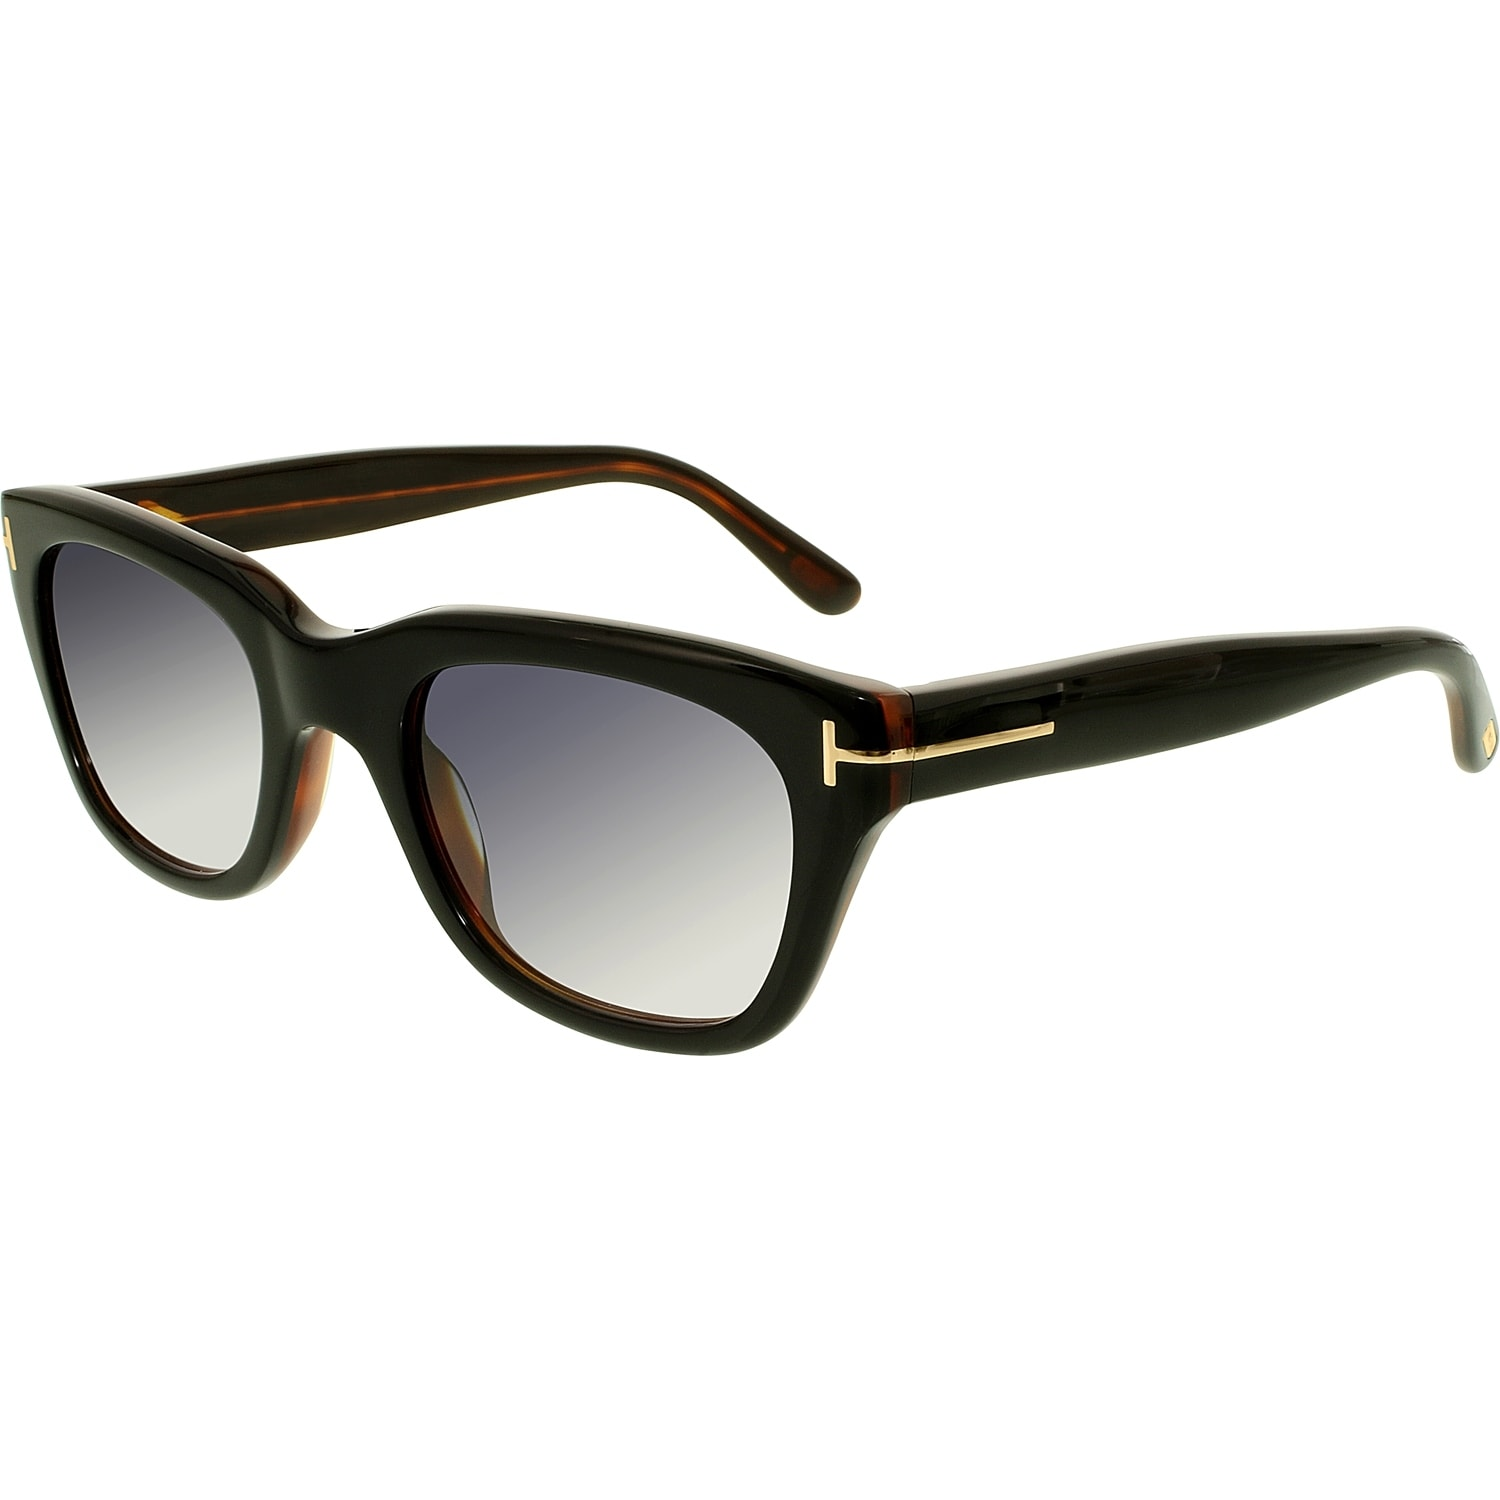 fbd5e61aaa5 Tom Ford Men s Gradient Snowdon FT0237-05B-50 Brown Square Sunglasses